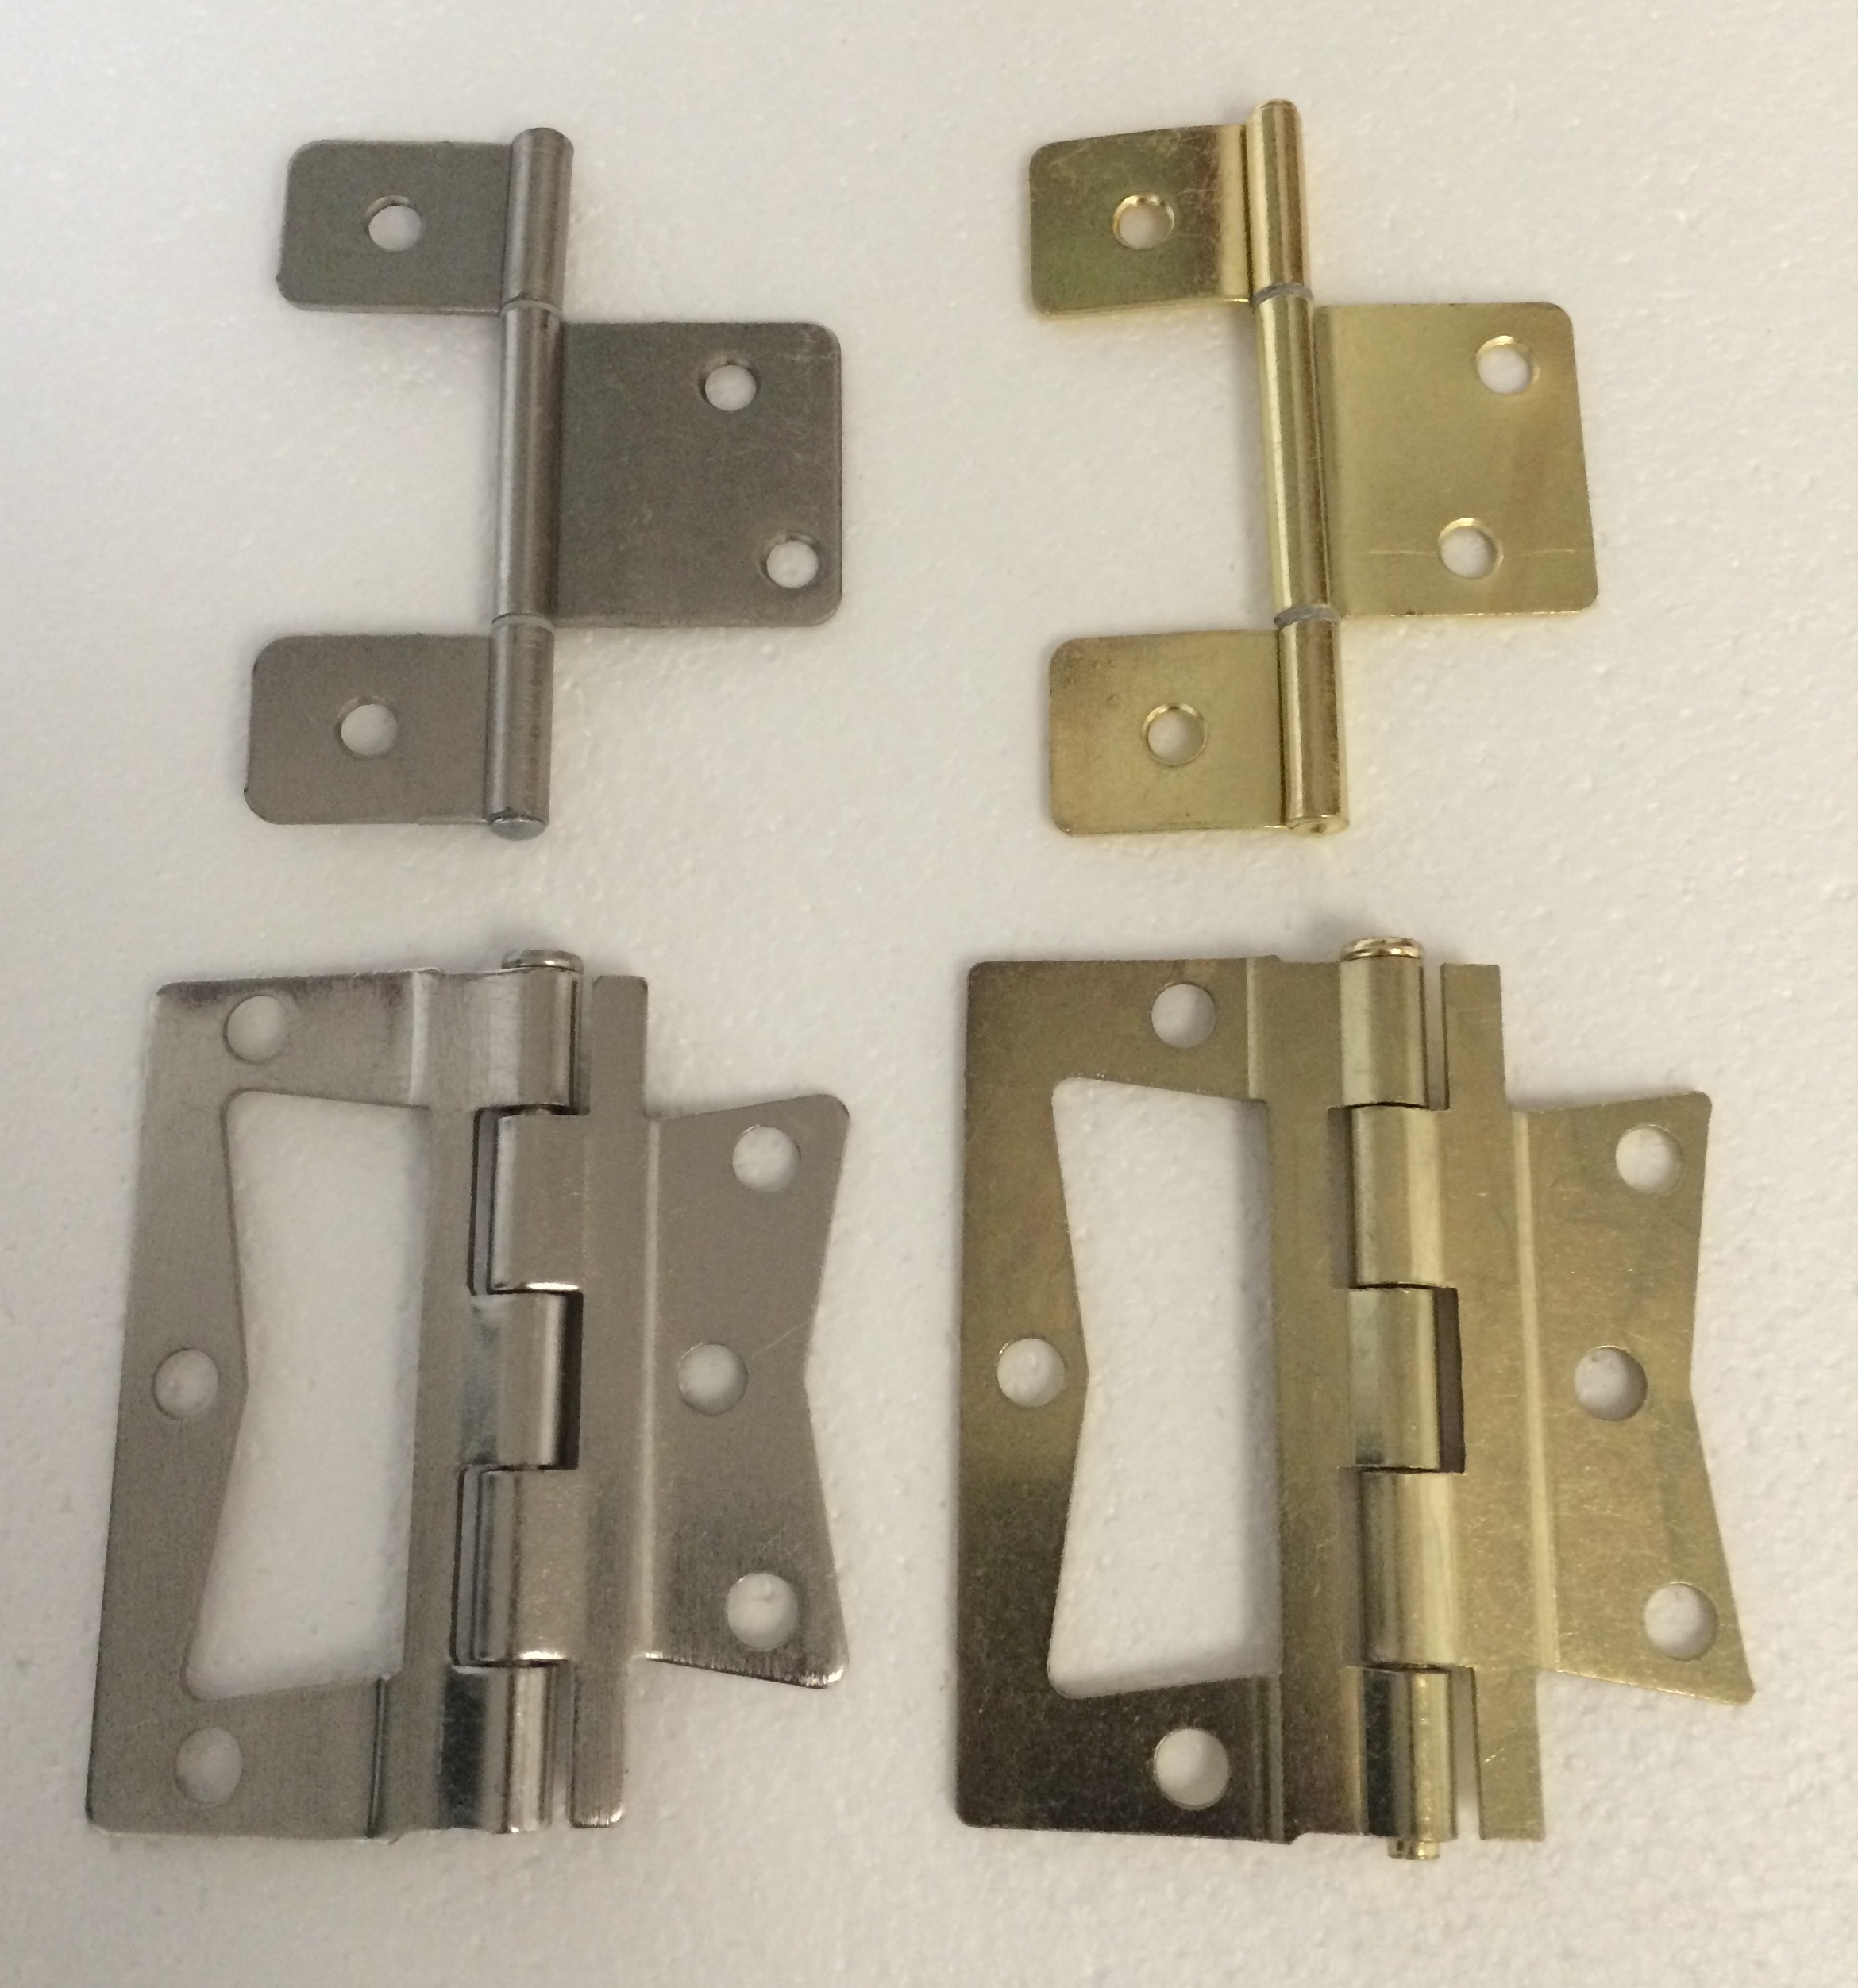 INTERIOR DOOR HINGES